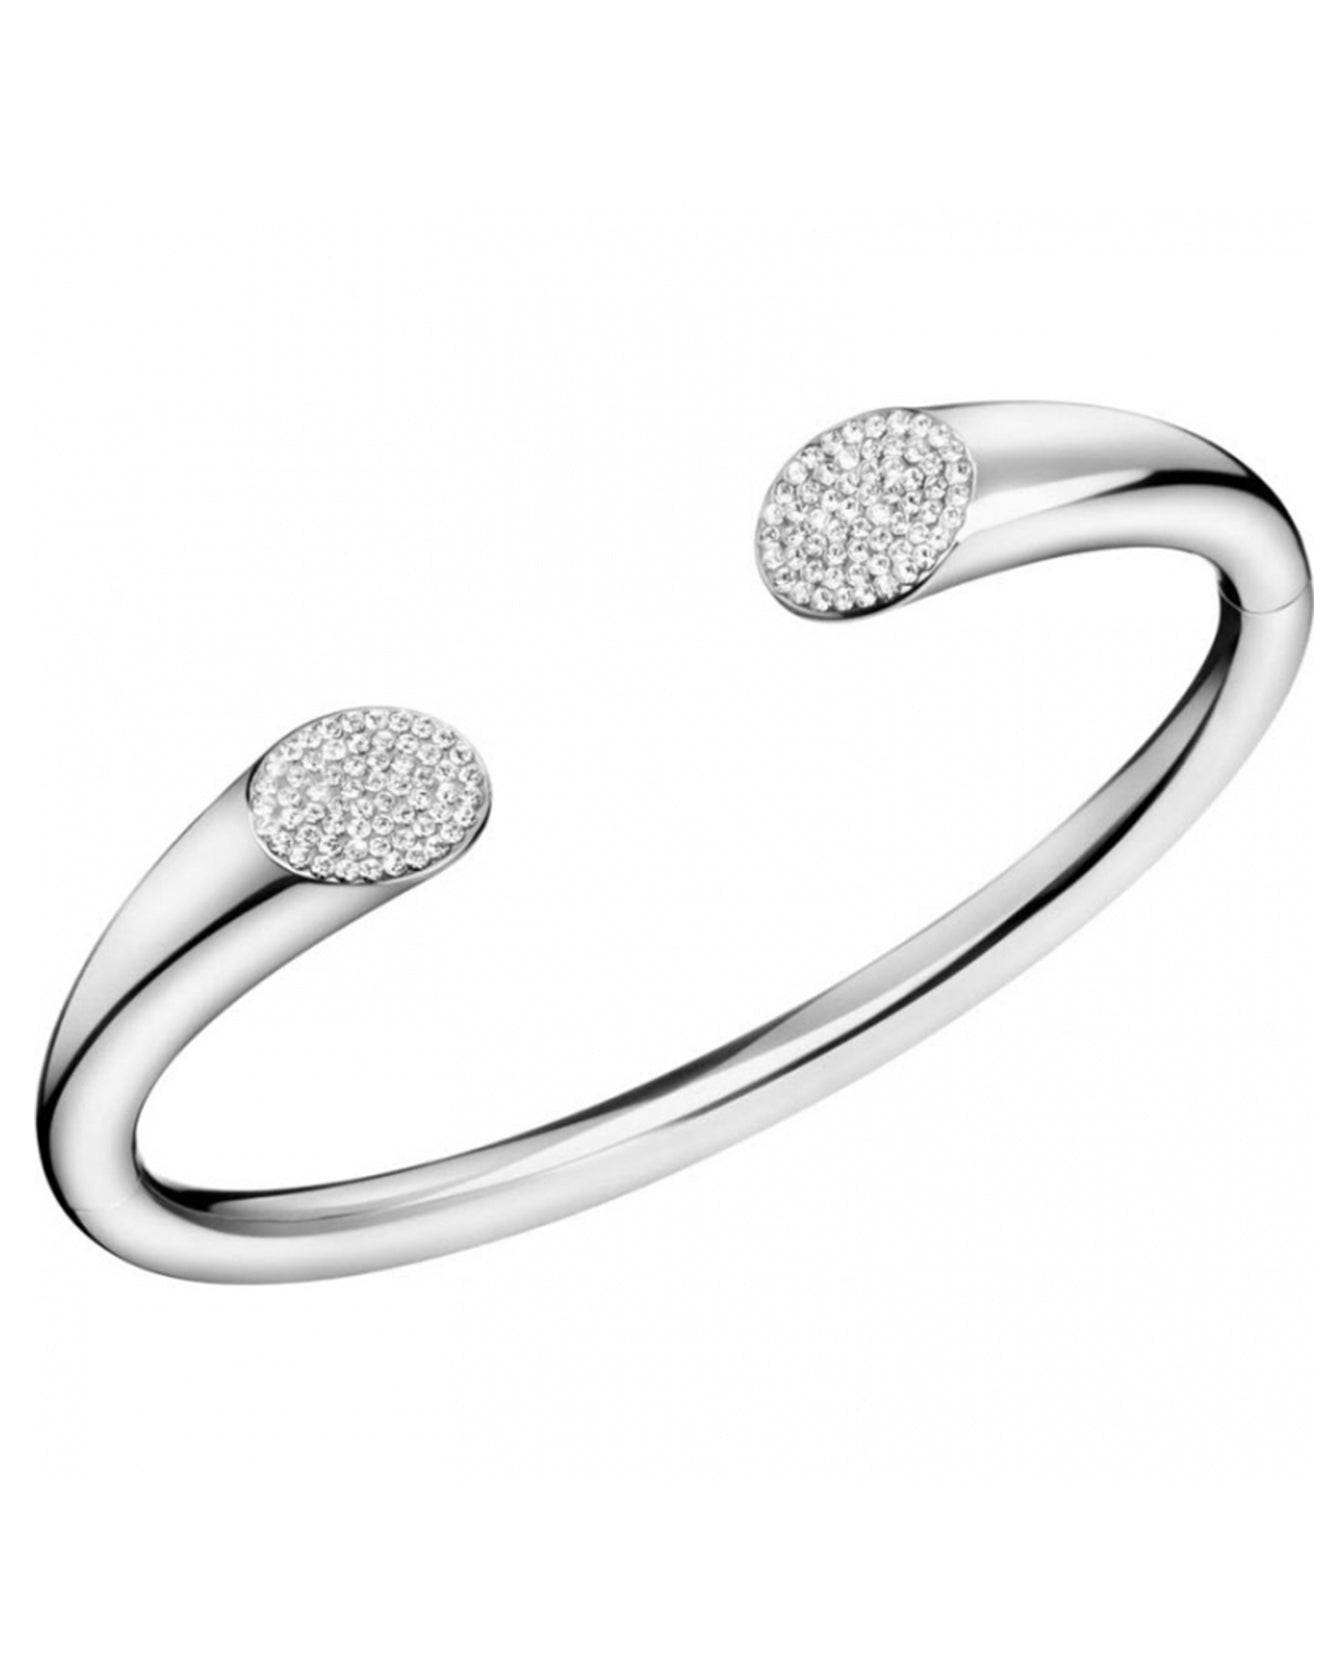 Calvin Klein Ladies Stainless Steel & Zirconia Brilliant Bangle